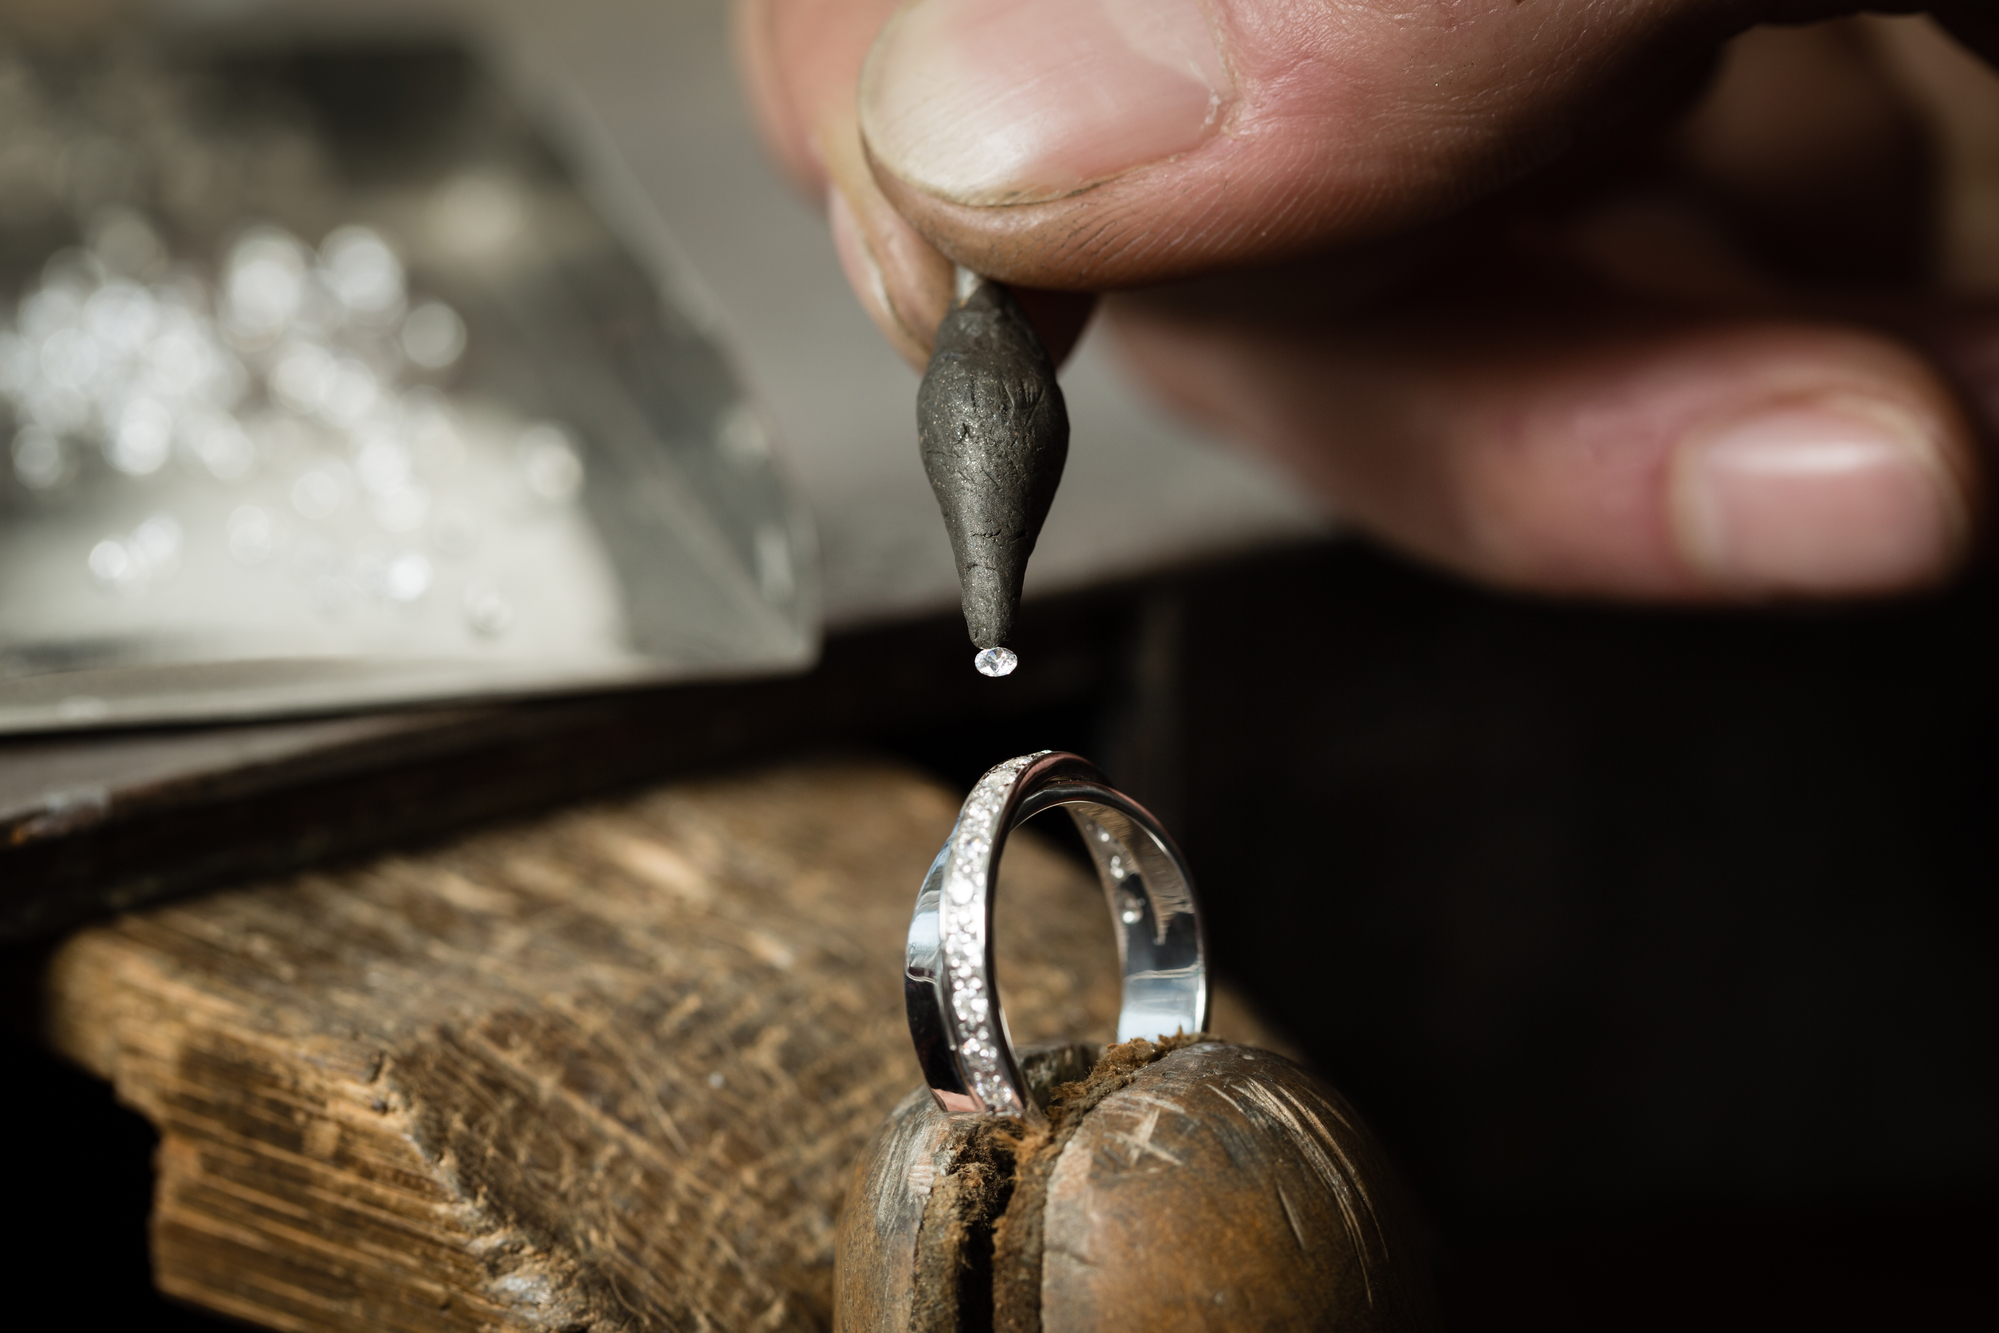 How To Clean Your Engagement Or Wedding Ring The Right Way